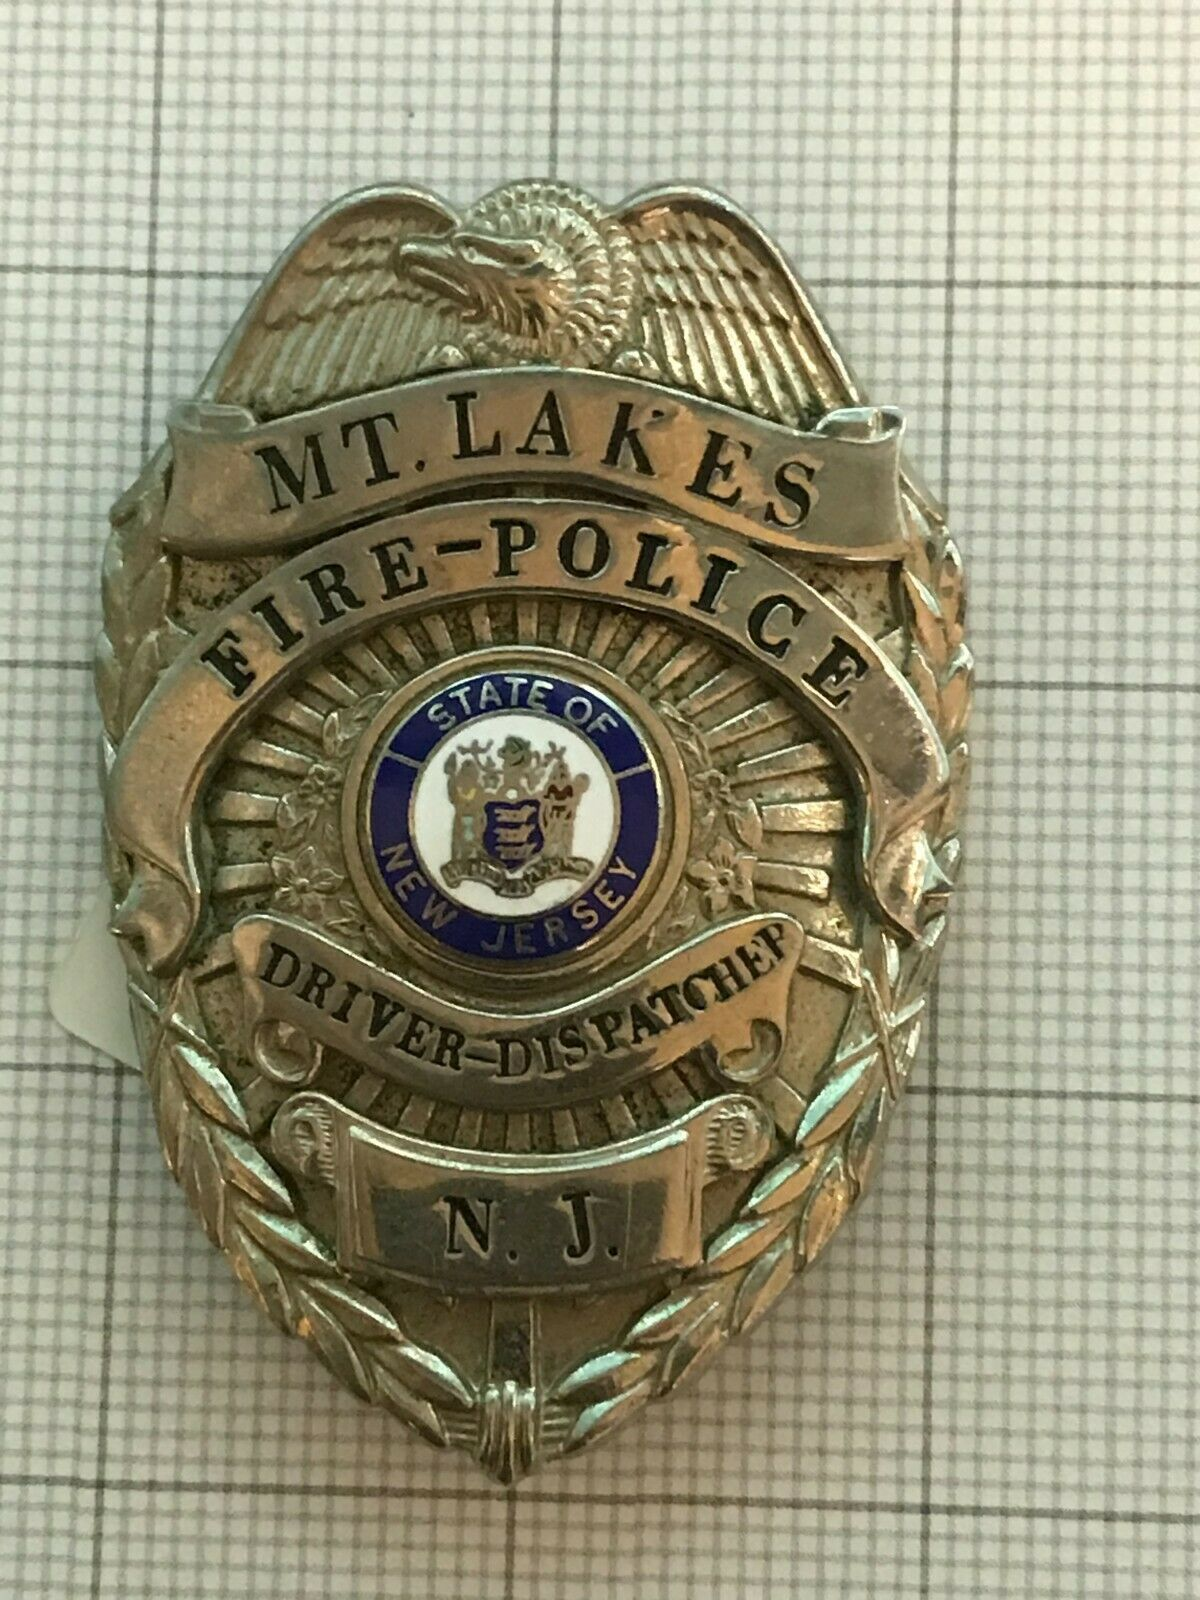 Primary image for Antique Obsolete Mt. Lakes New Jersey Driver Dispatcher Fire Badge